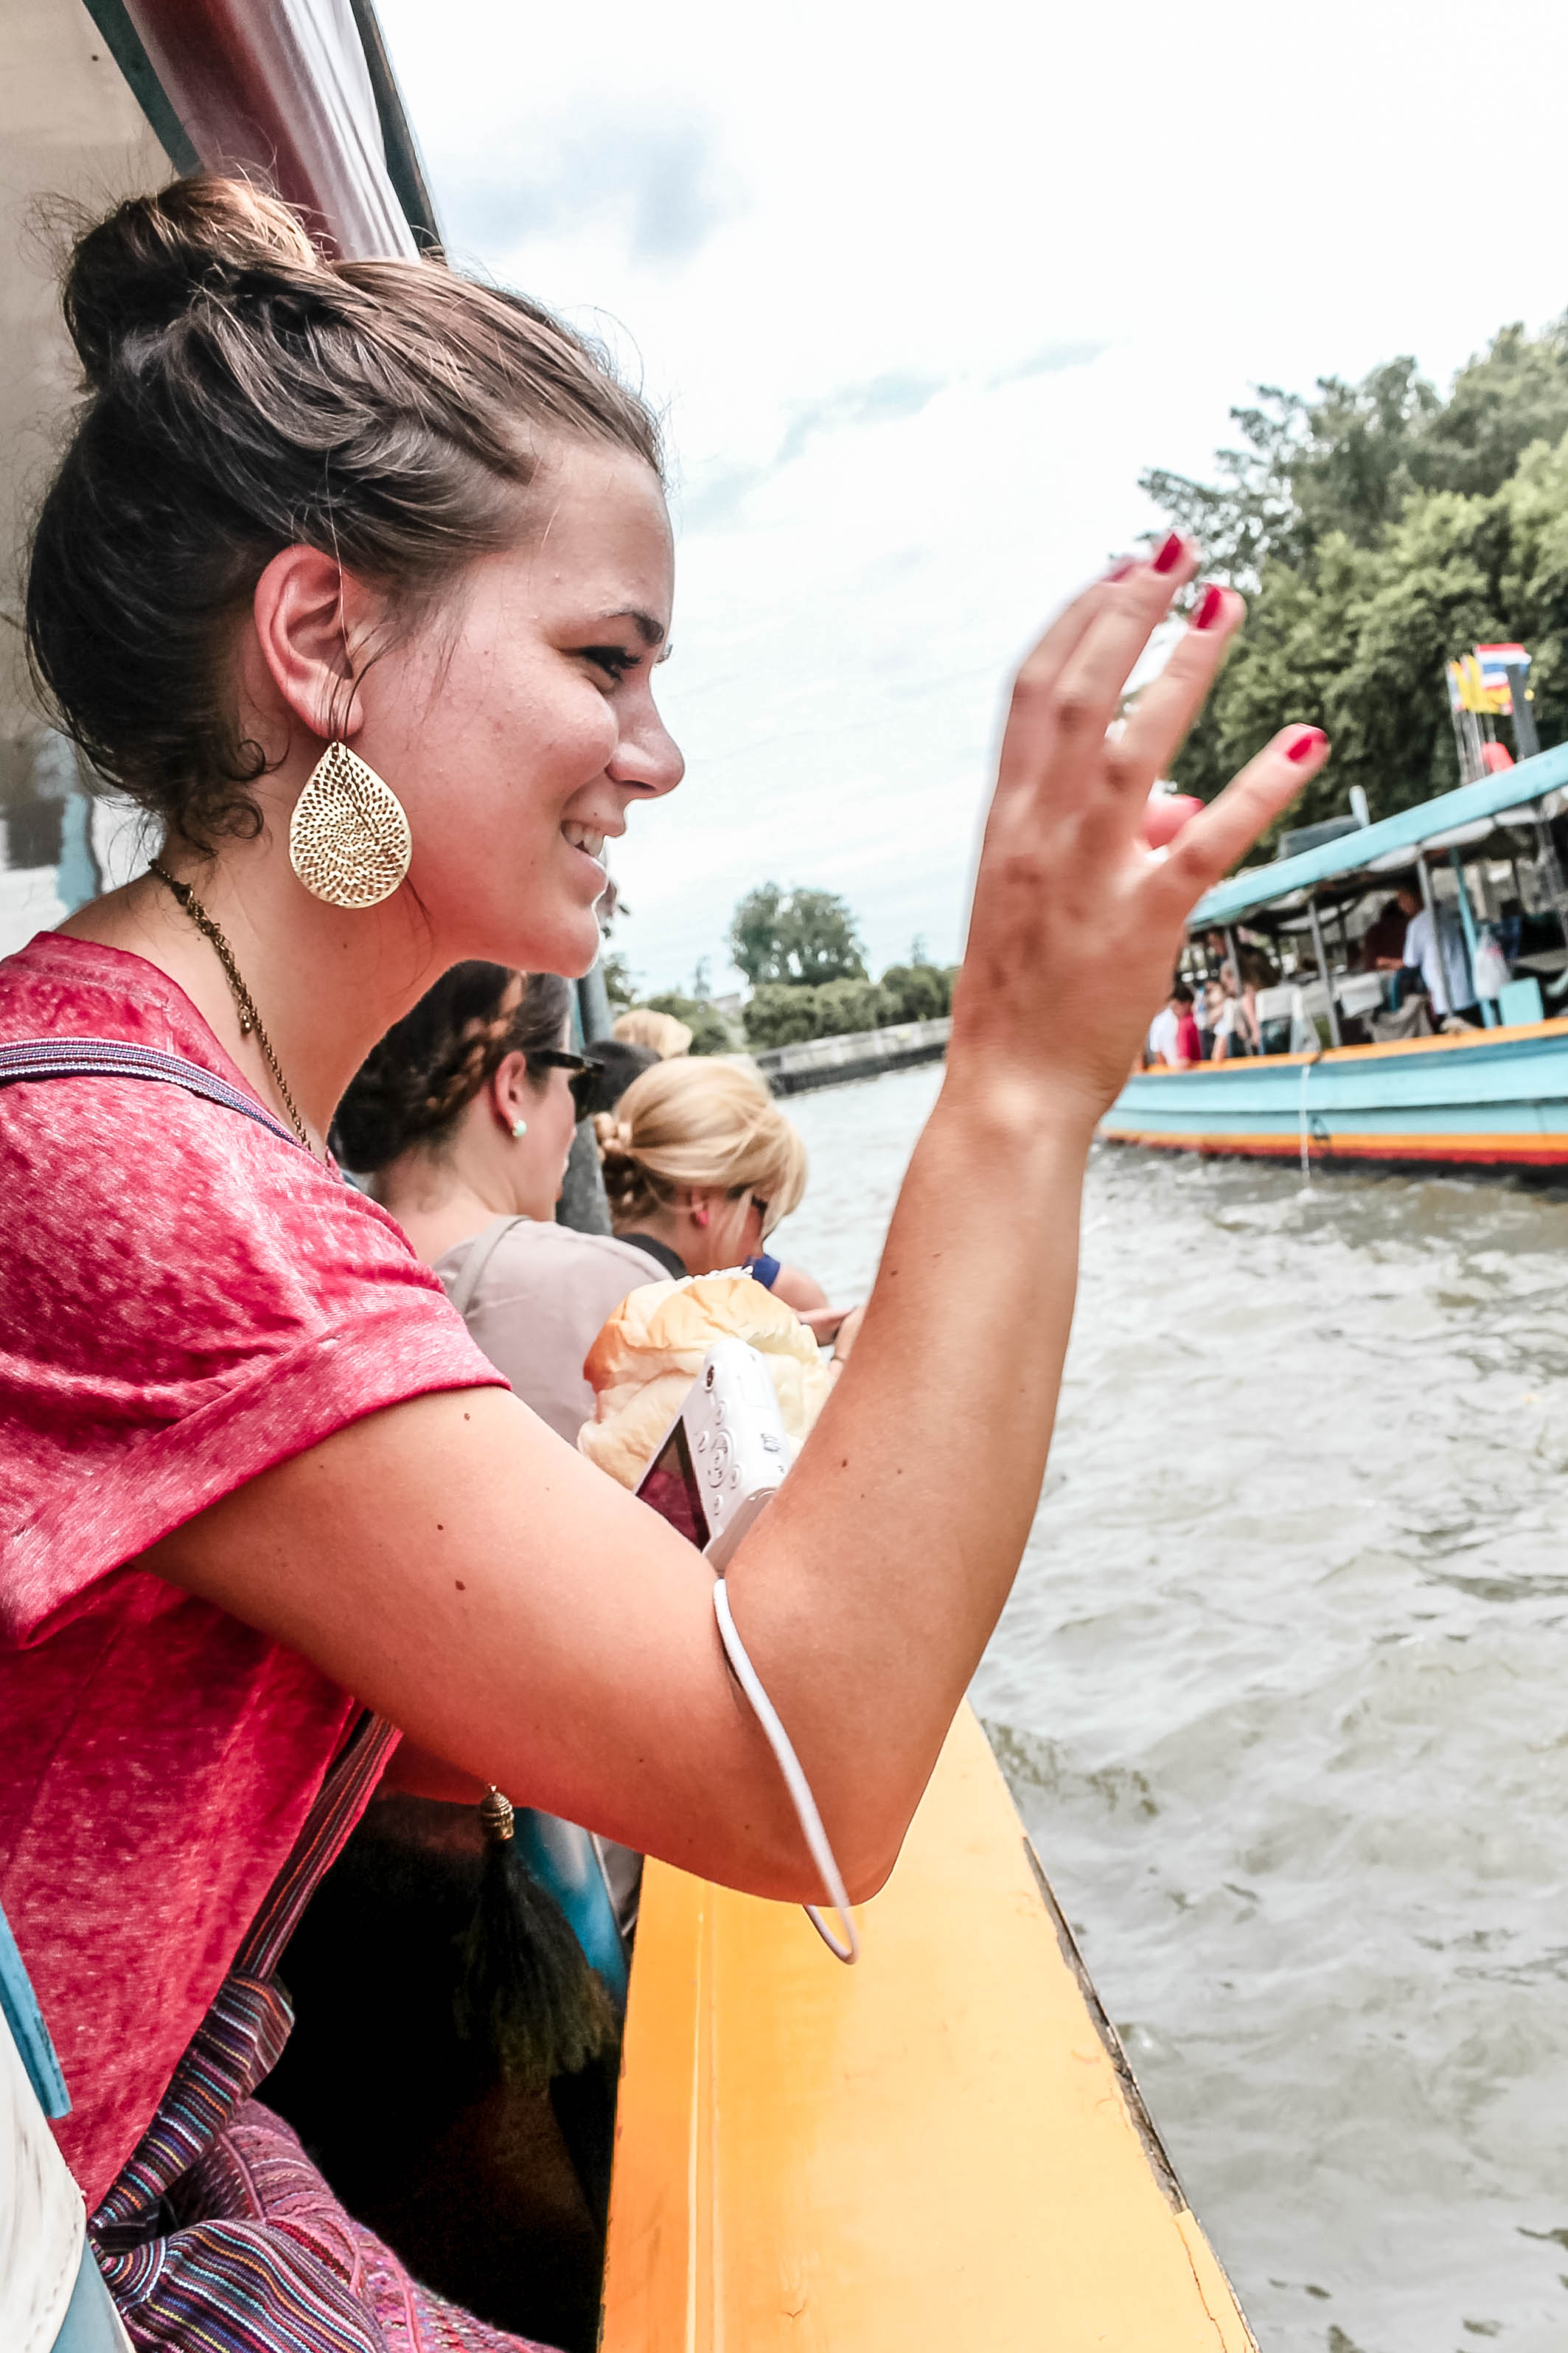 THIS QUEEN IN HER BIG EARRINGS FEEDING FISH CARELESSLY ON THE WATERWAYS OF BANGKOK IN 2013